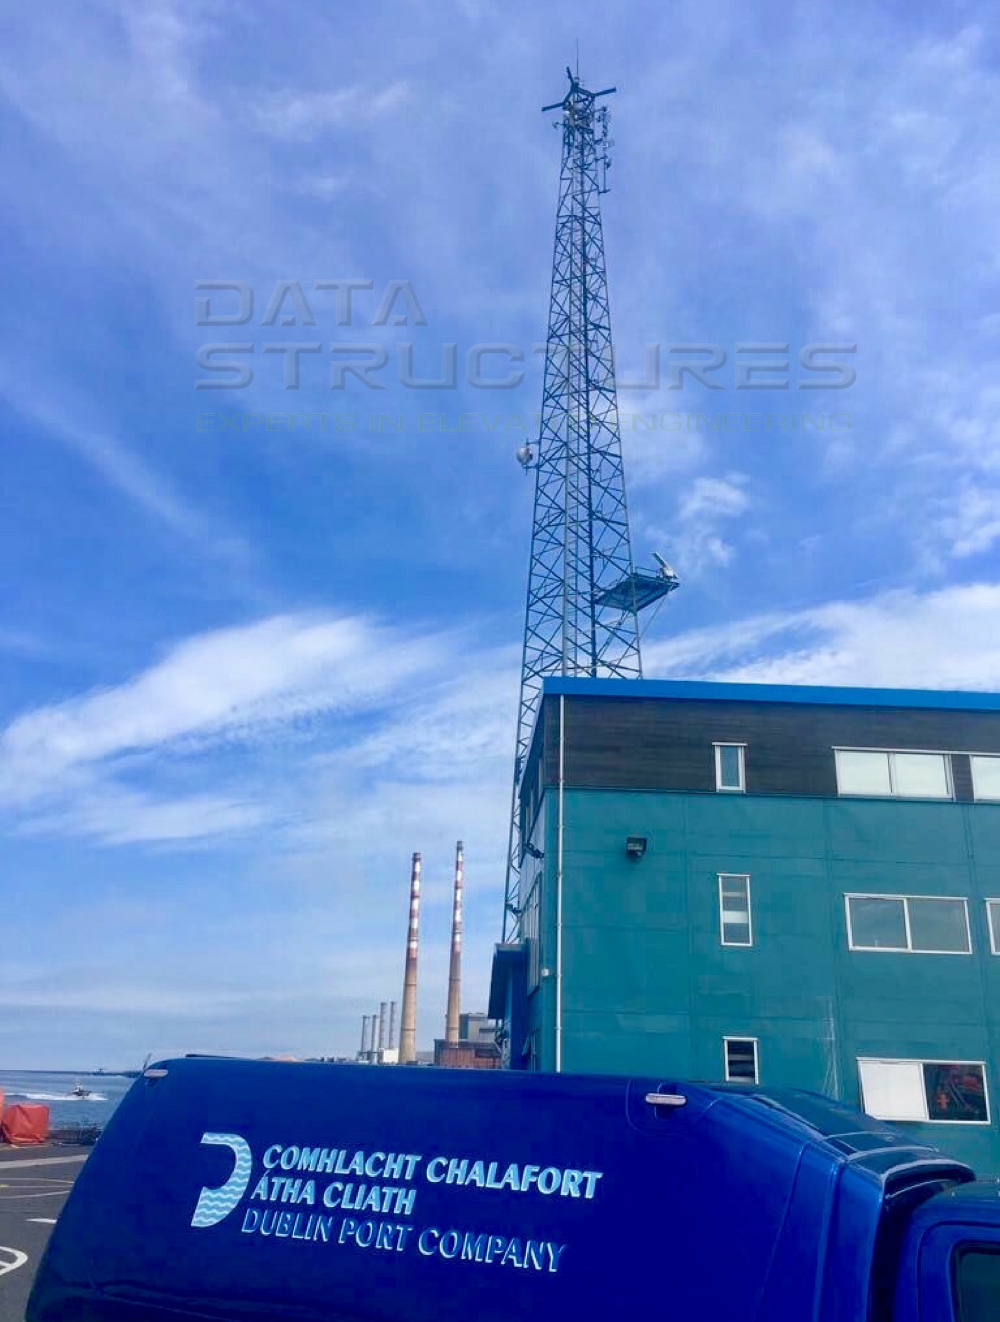 Maintenance work for Dublin Port Company by DSI